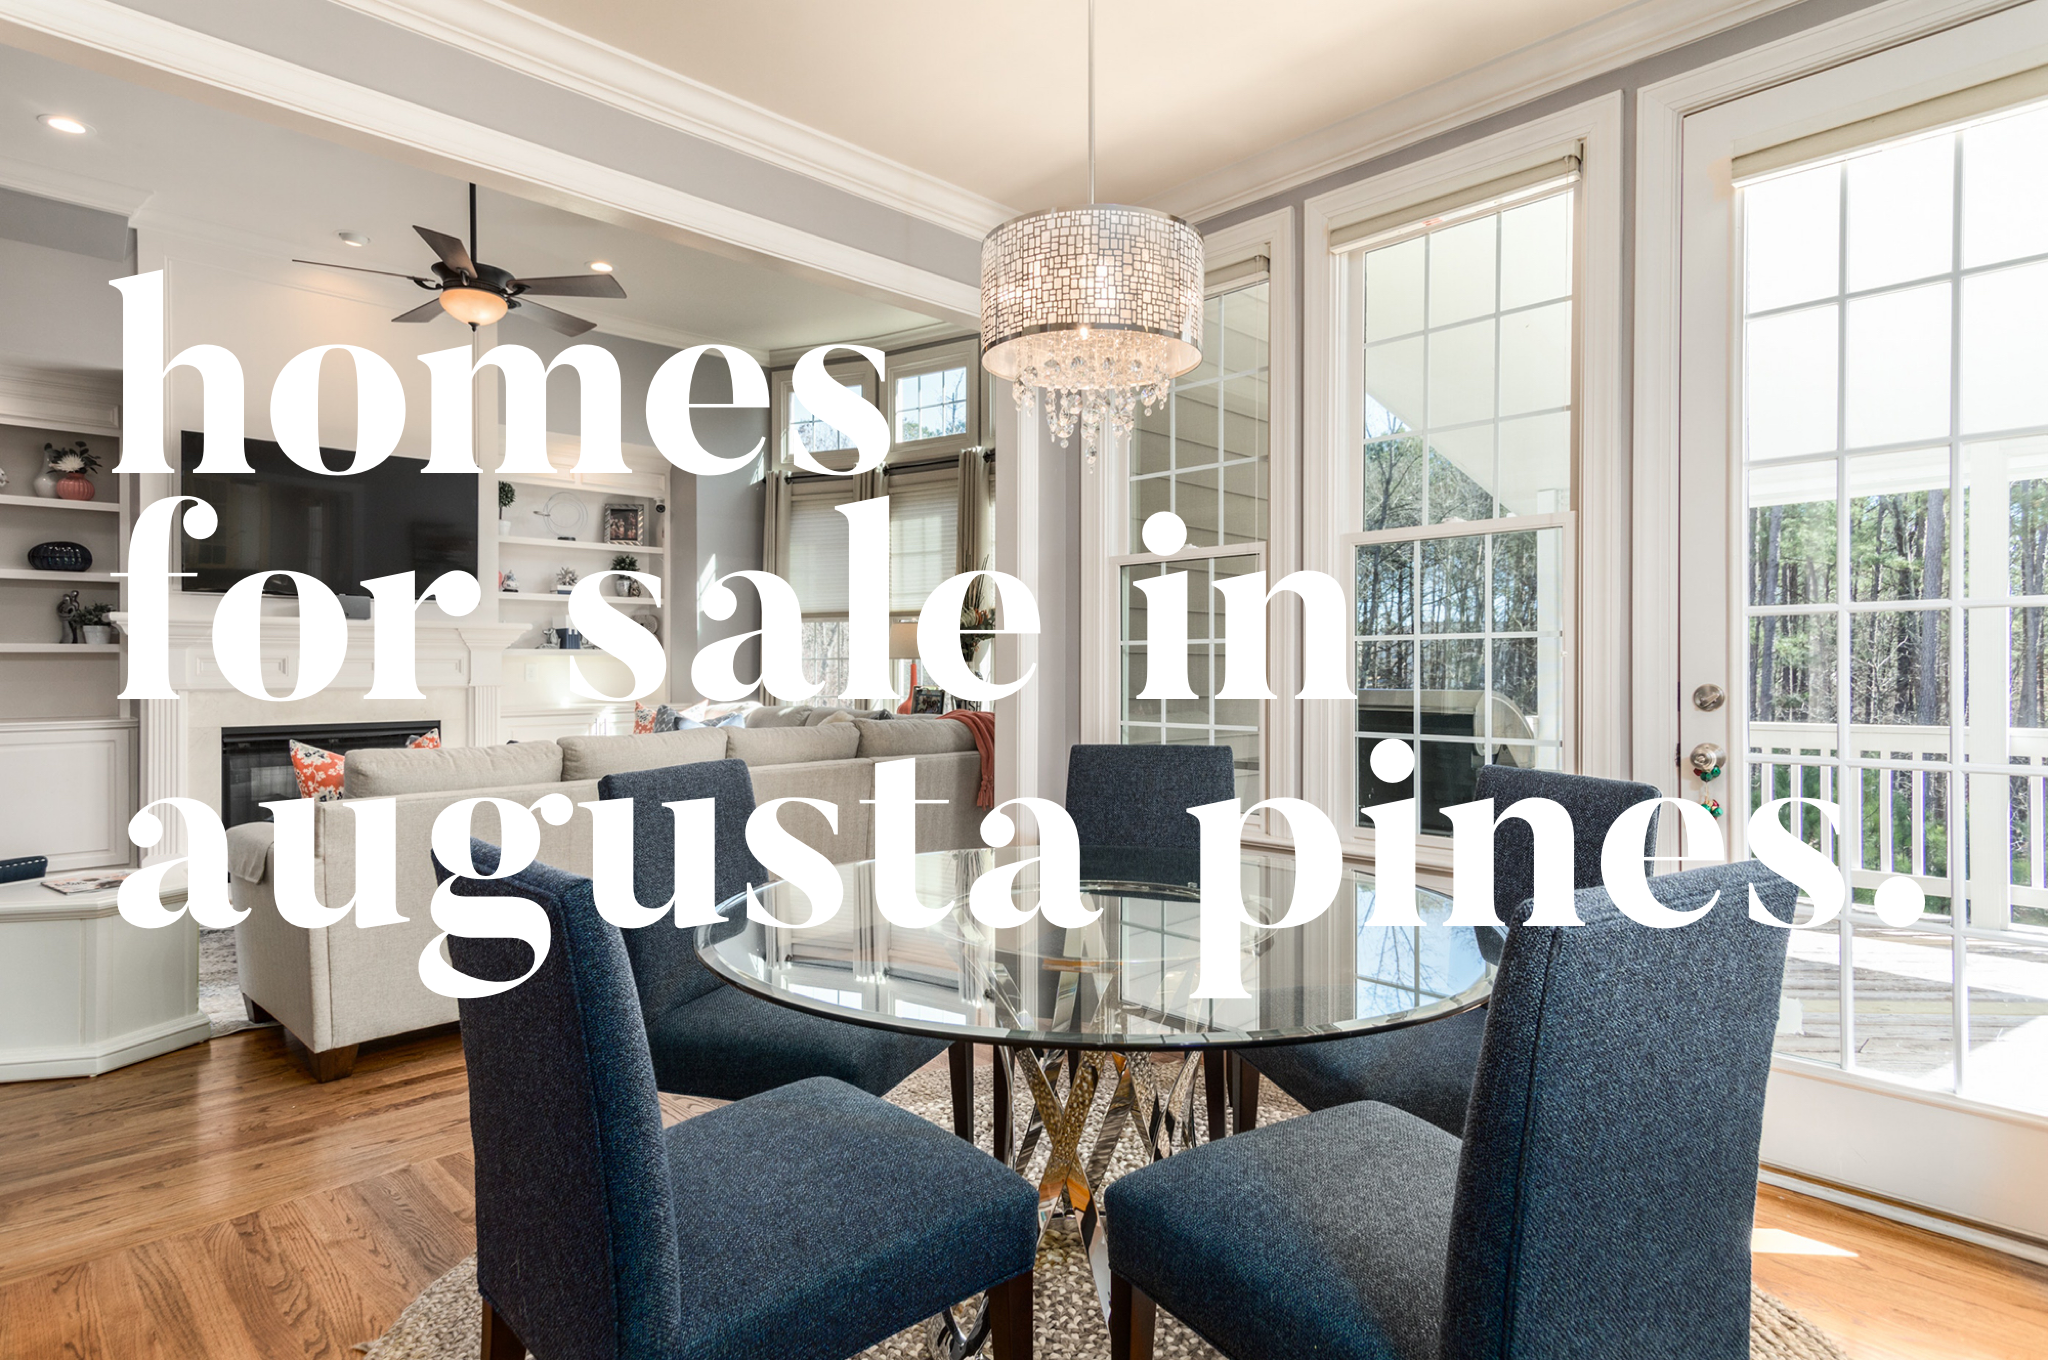 beautiful home in augusta pines - the woodlands- on the lake - homes for sale in memorial northwest - open houses in memorial northwest - real estate agent and realtor, jordan marie schilleci, jo & co. realty group